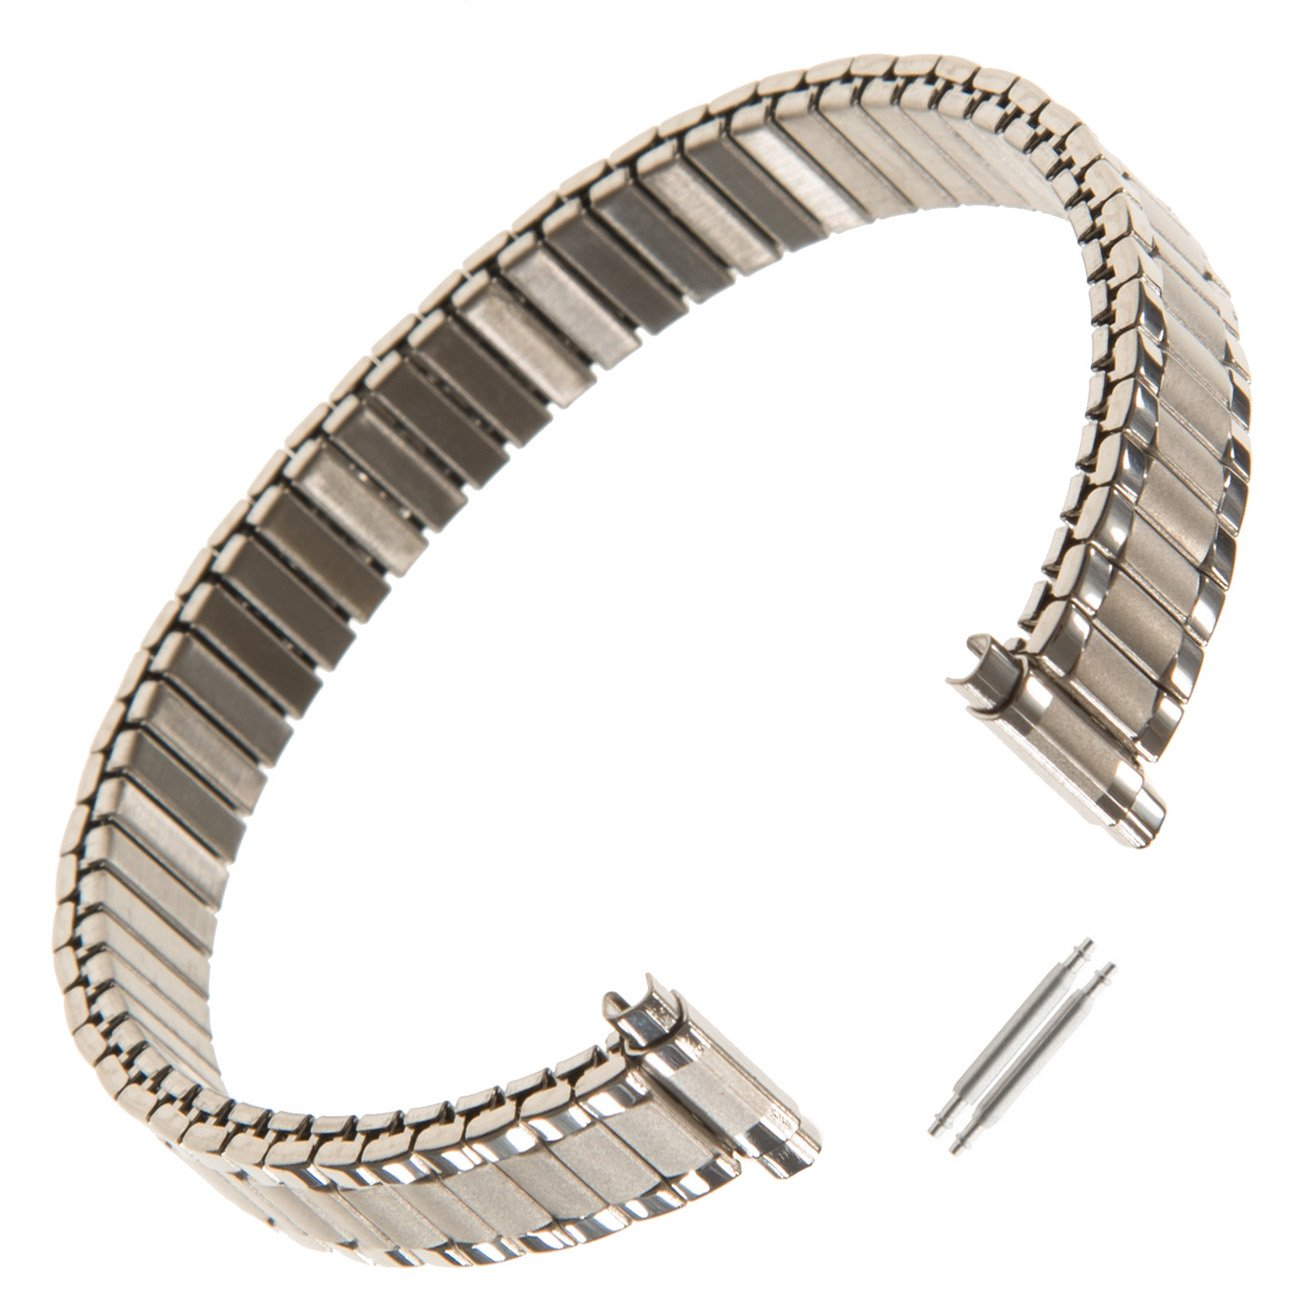 Gilden Ladies Expansion 9-13mm Extra-Long Stainless Steel Watch Band 124-SL